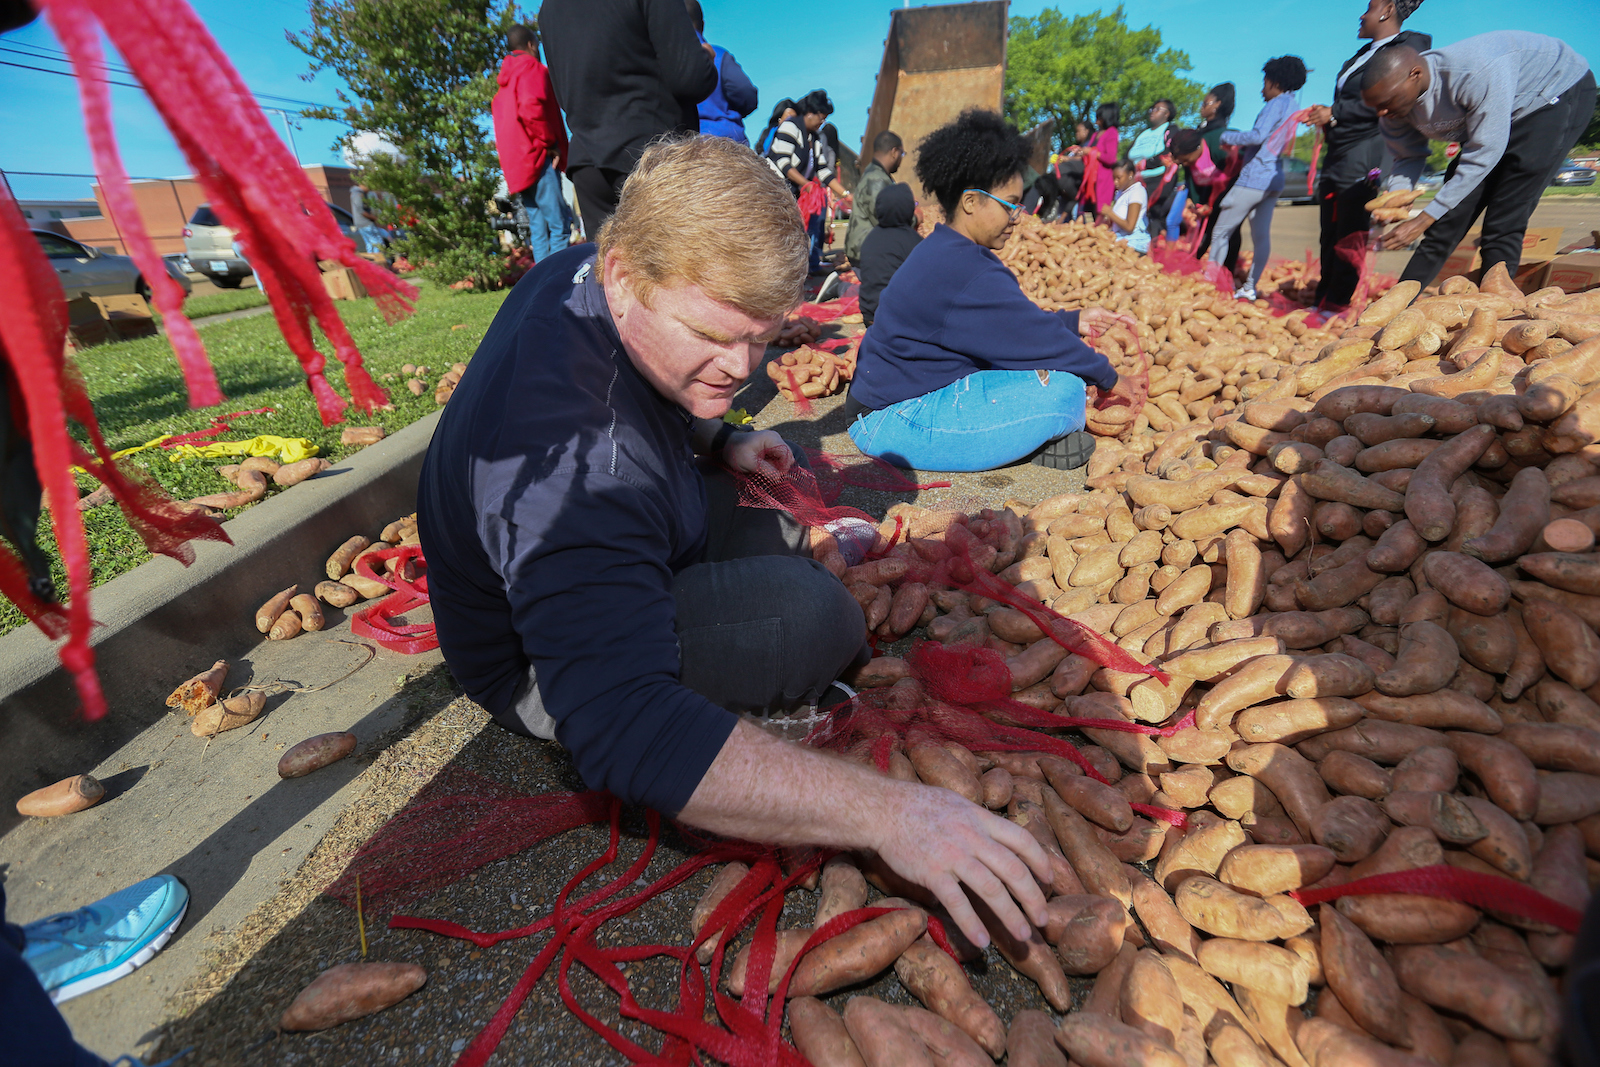 Dozens of volunteers meticulously sack the sweet potatoes that have become a hot commodity with the community during JSU's Crop Drop. (Photo by Charles A. Smith/JSU)